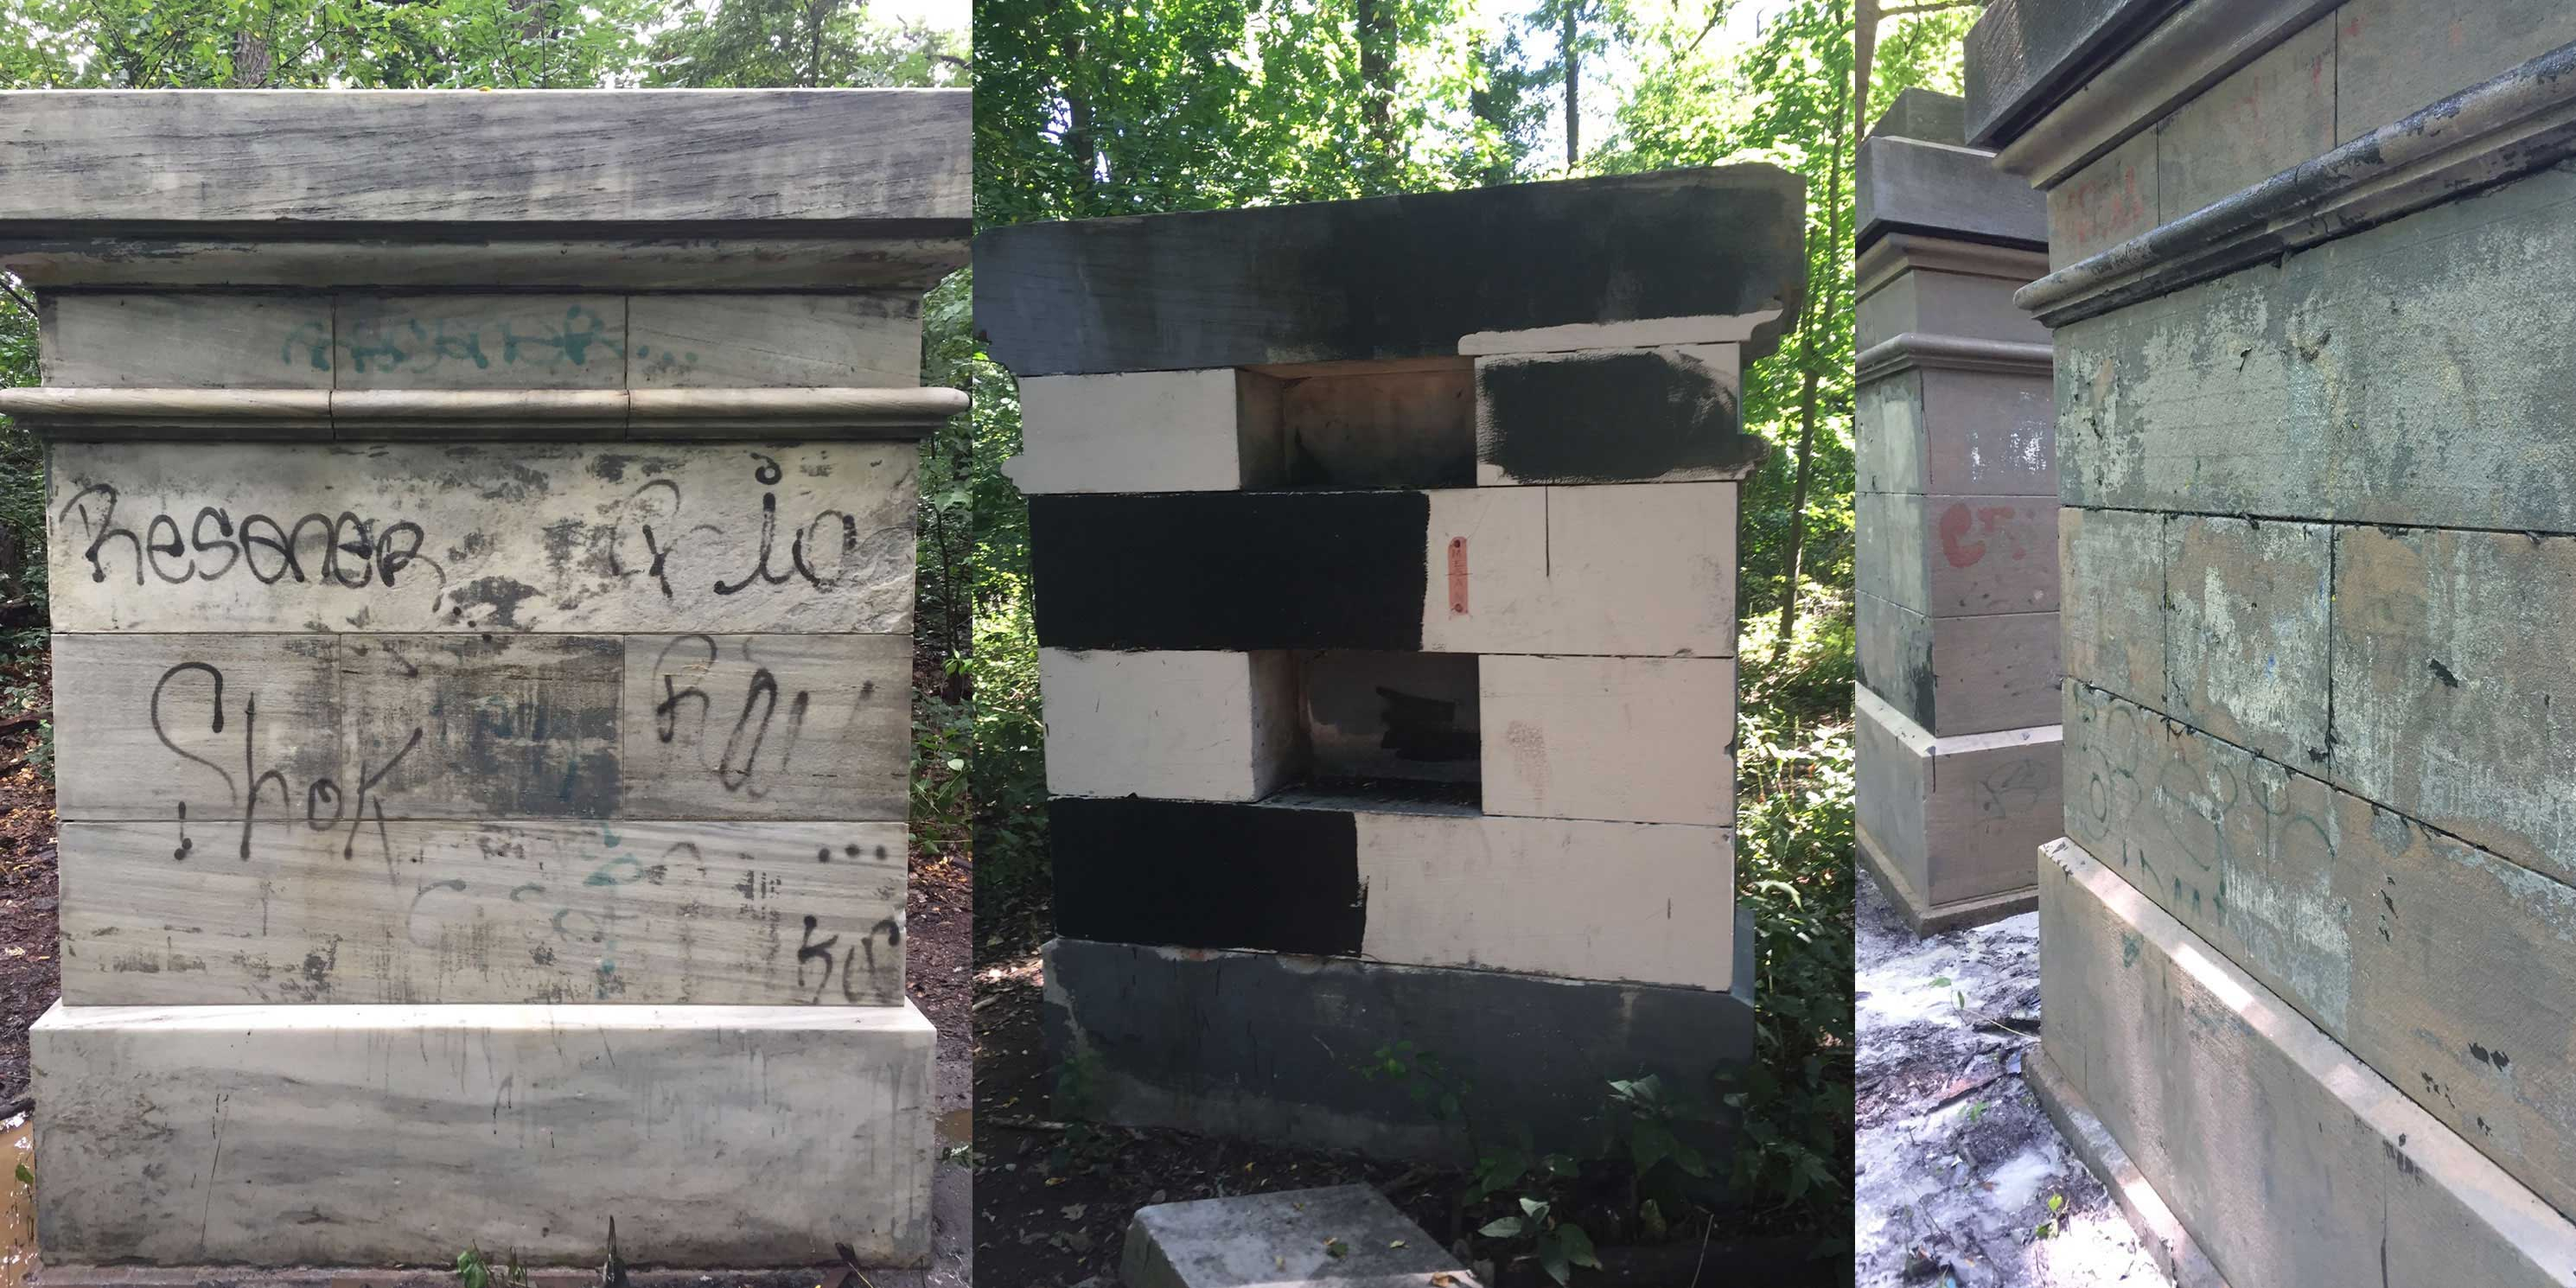 The Grand Central Stones in Van Cortlandt Park during renovation. Photo: Tatti Art Conservation.